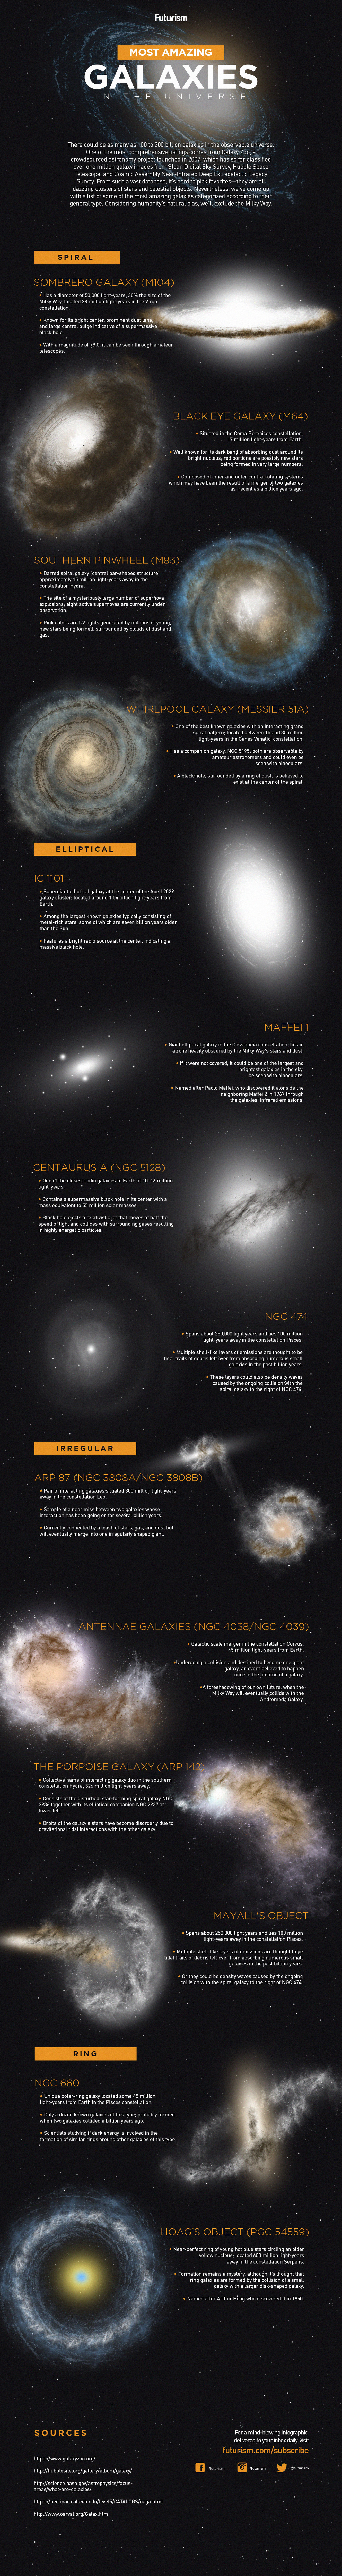 most amazing galaxies